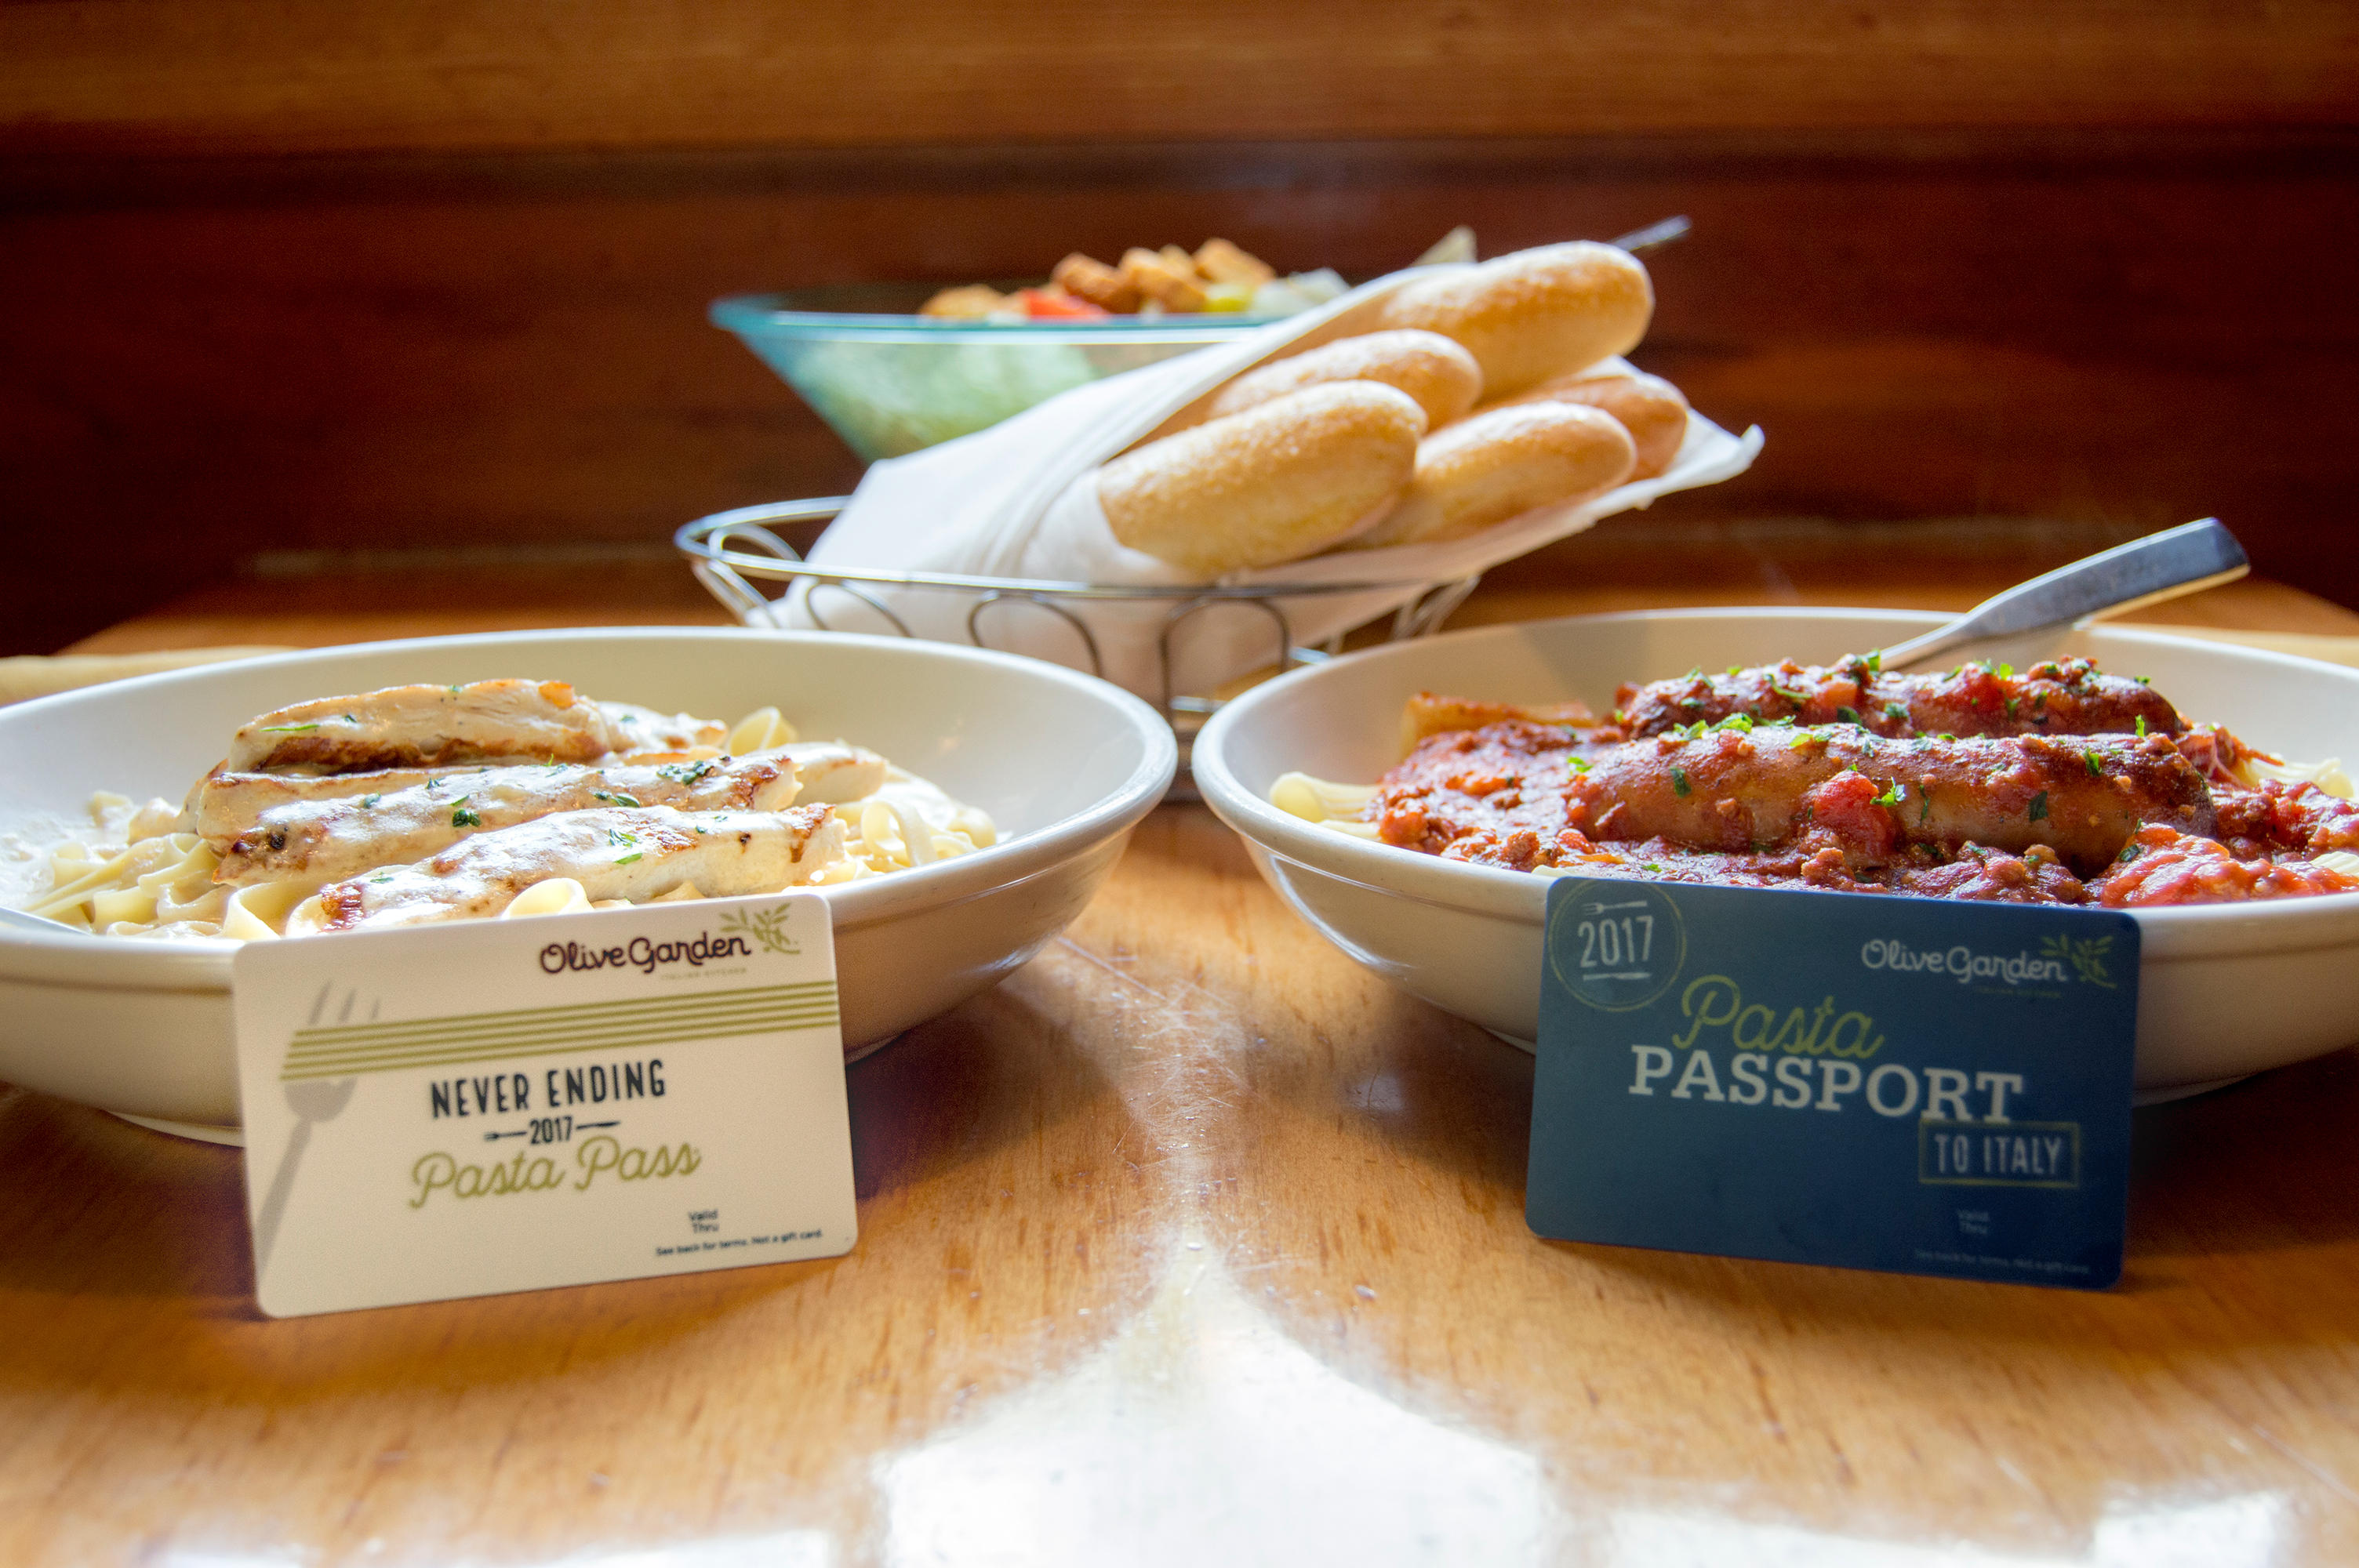 olive garden revives the pasta pass after 1 second sellout cbs